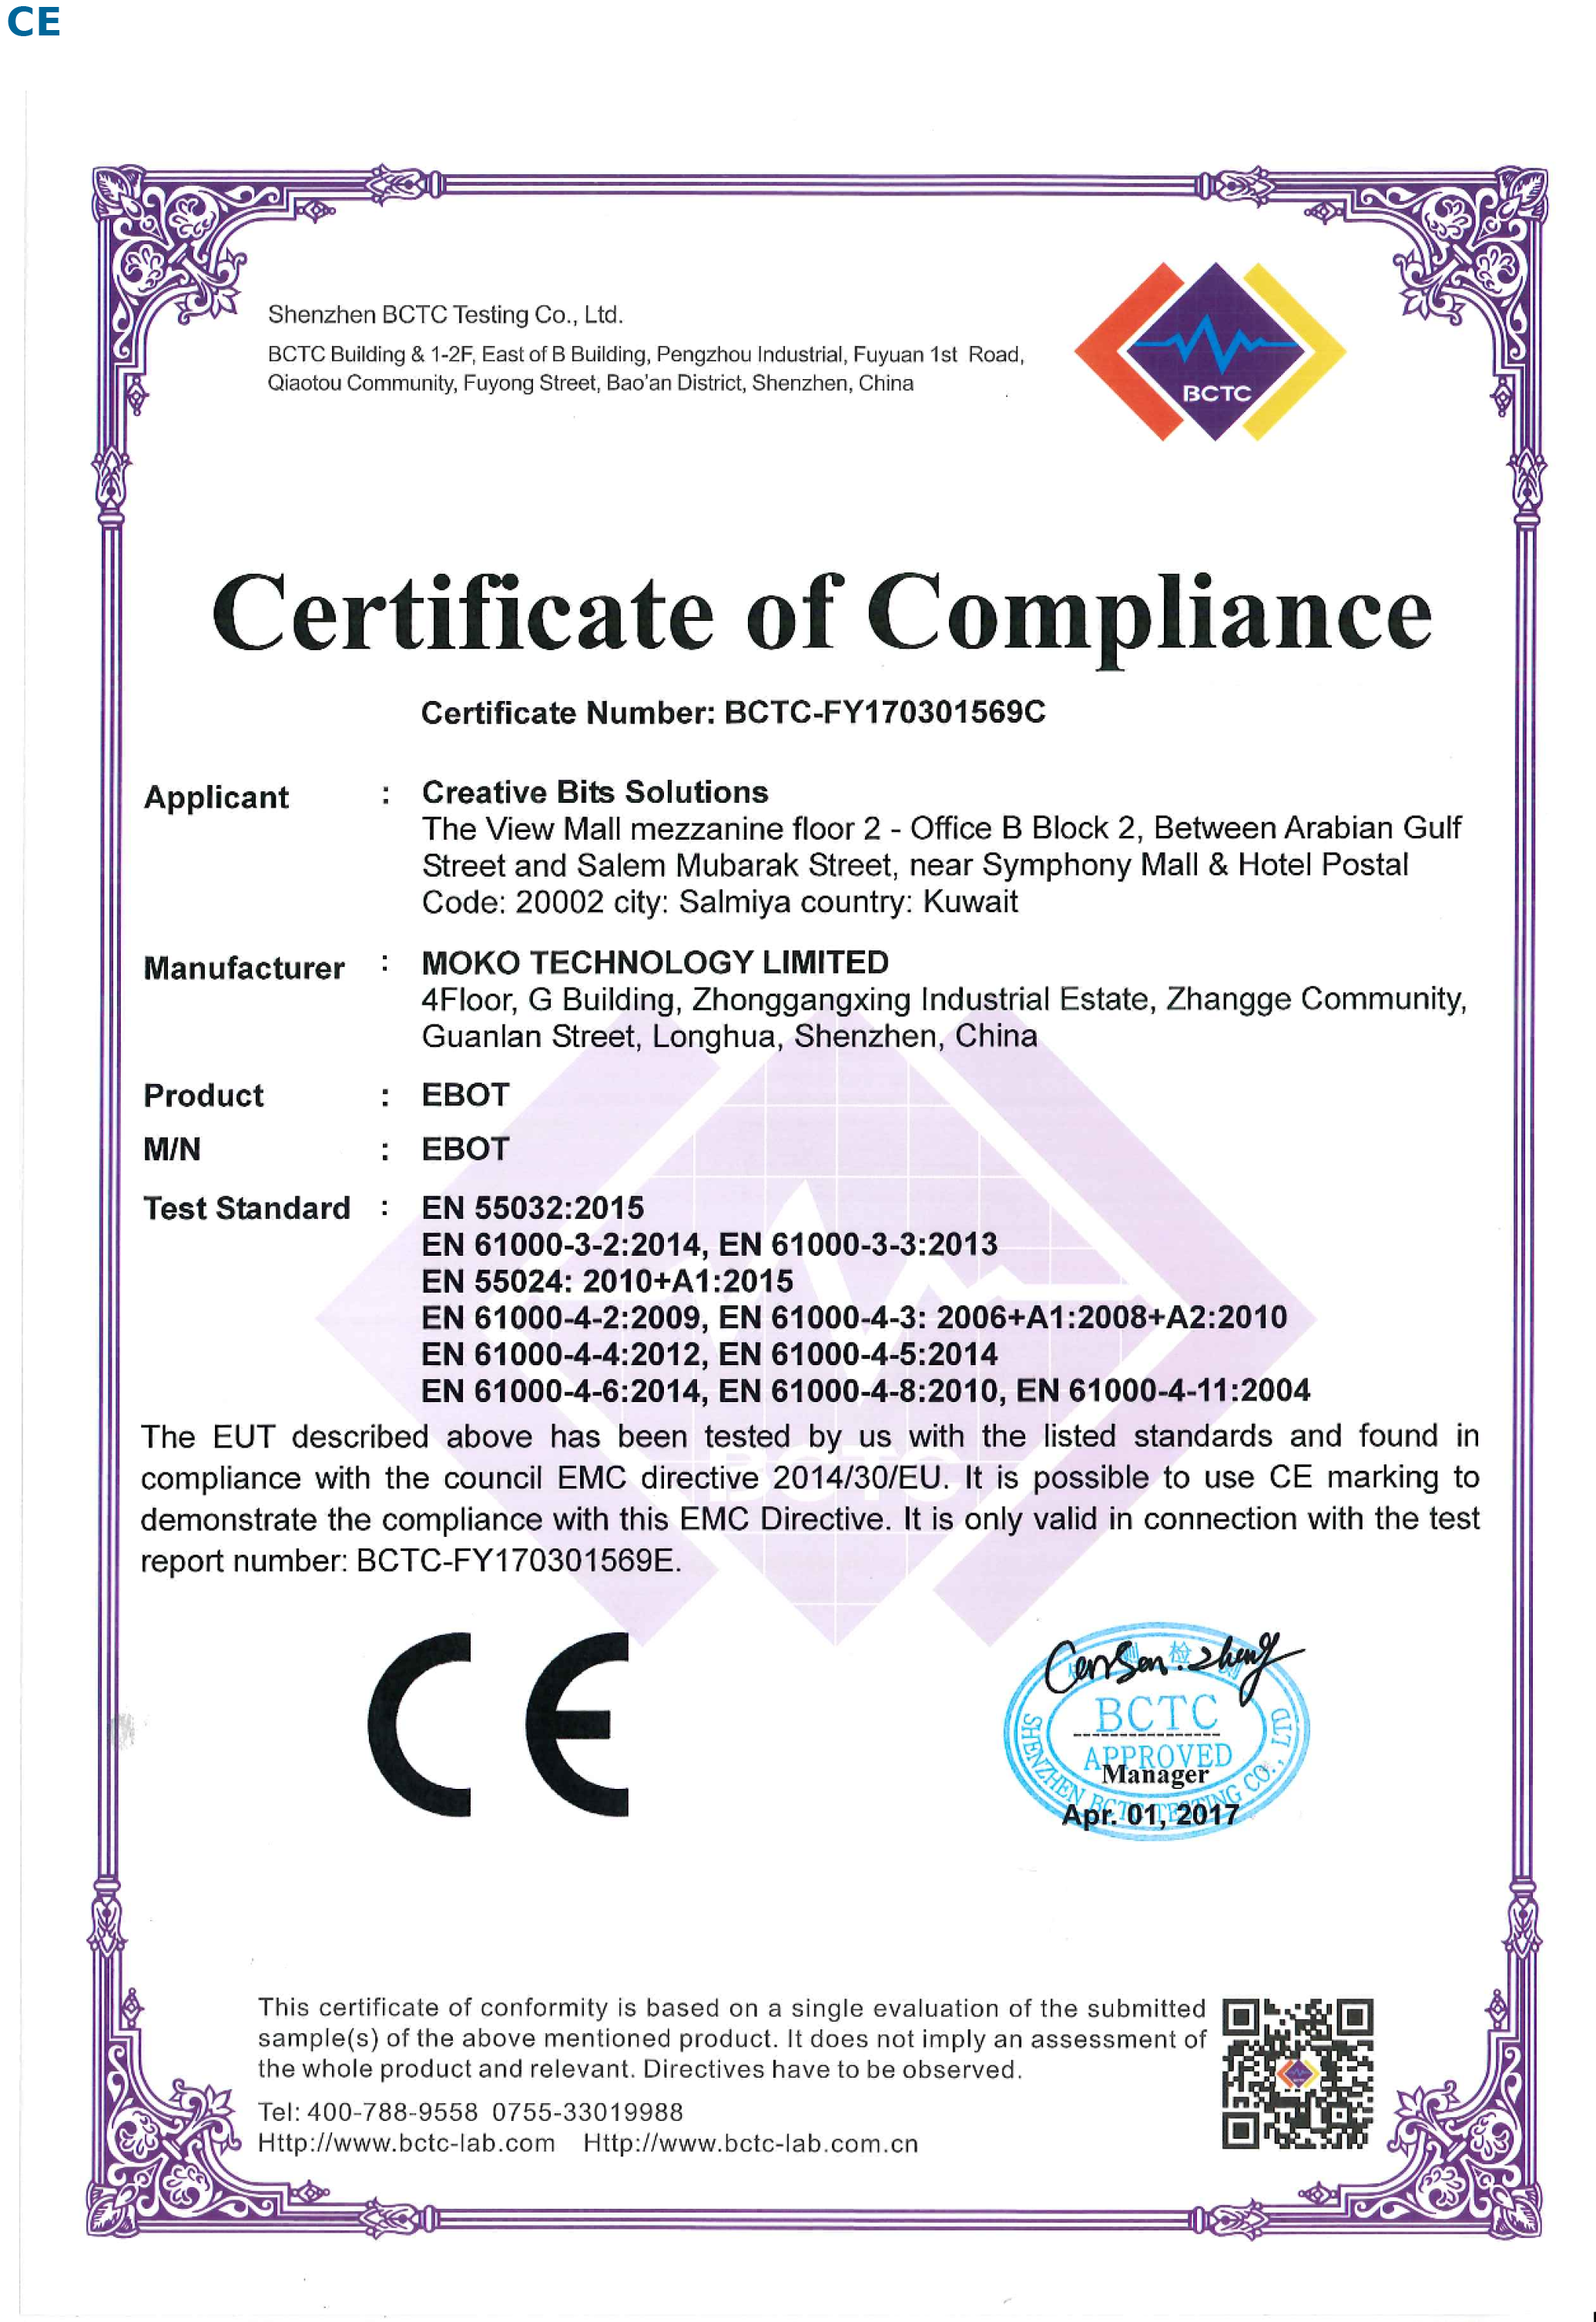 File:Certificate of Compliance.png.